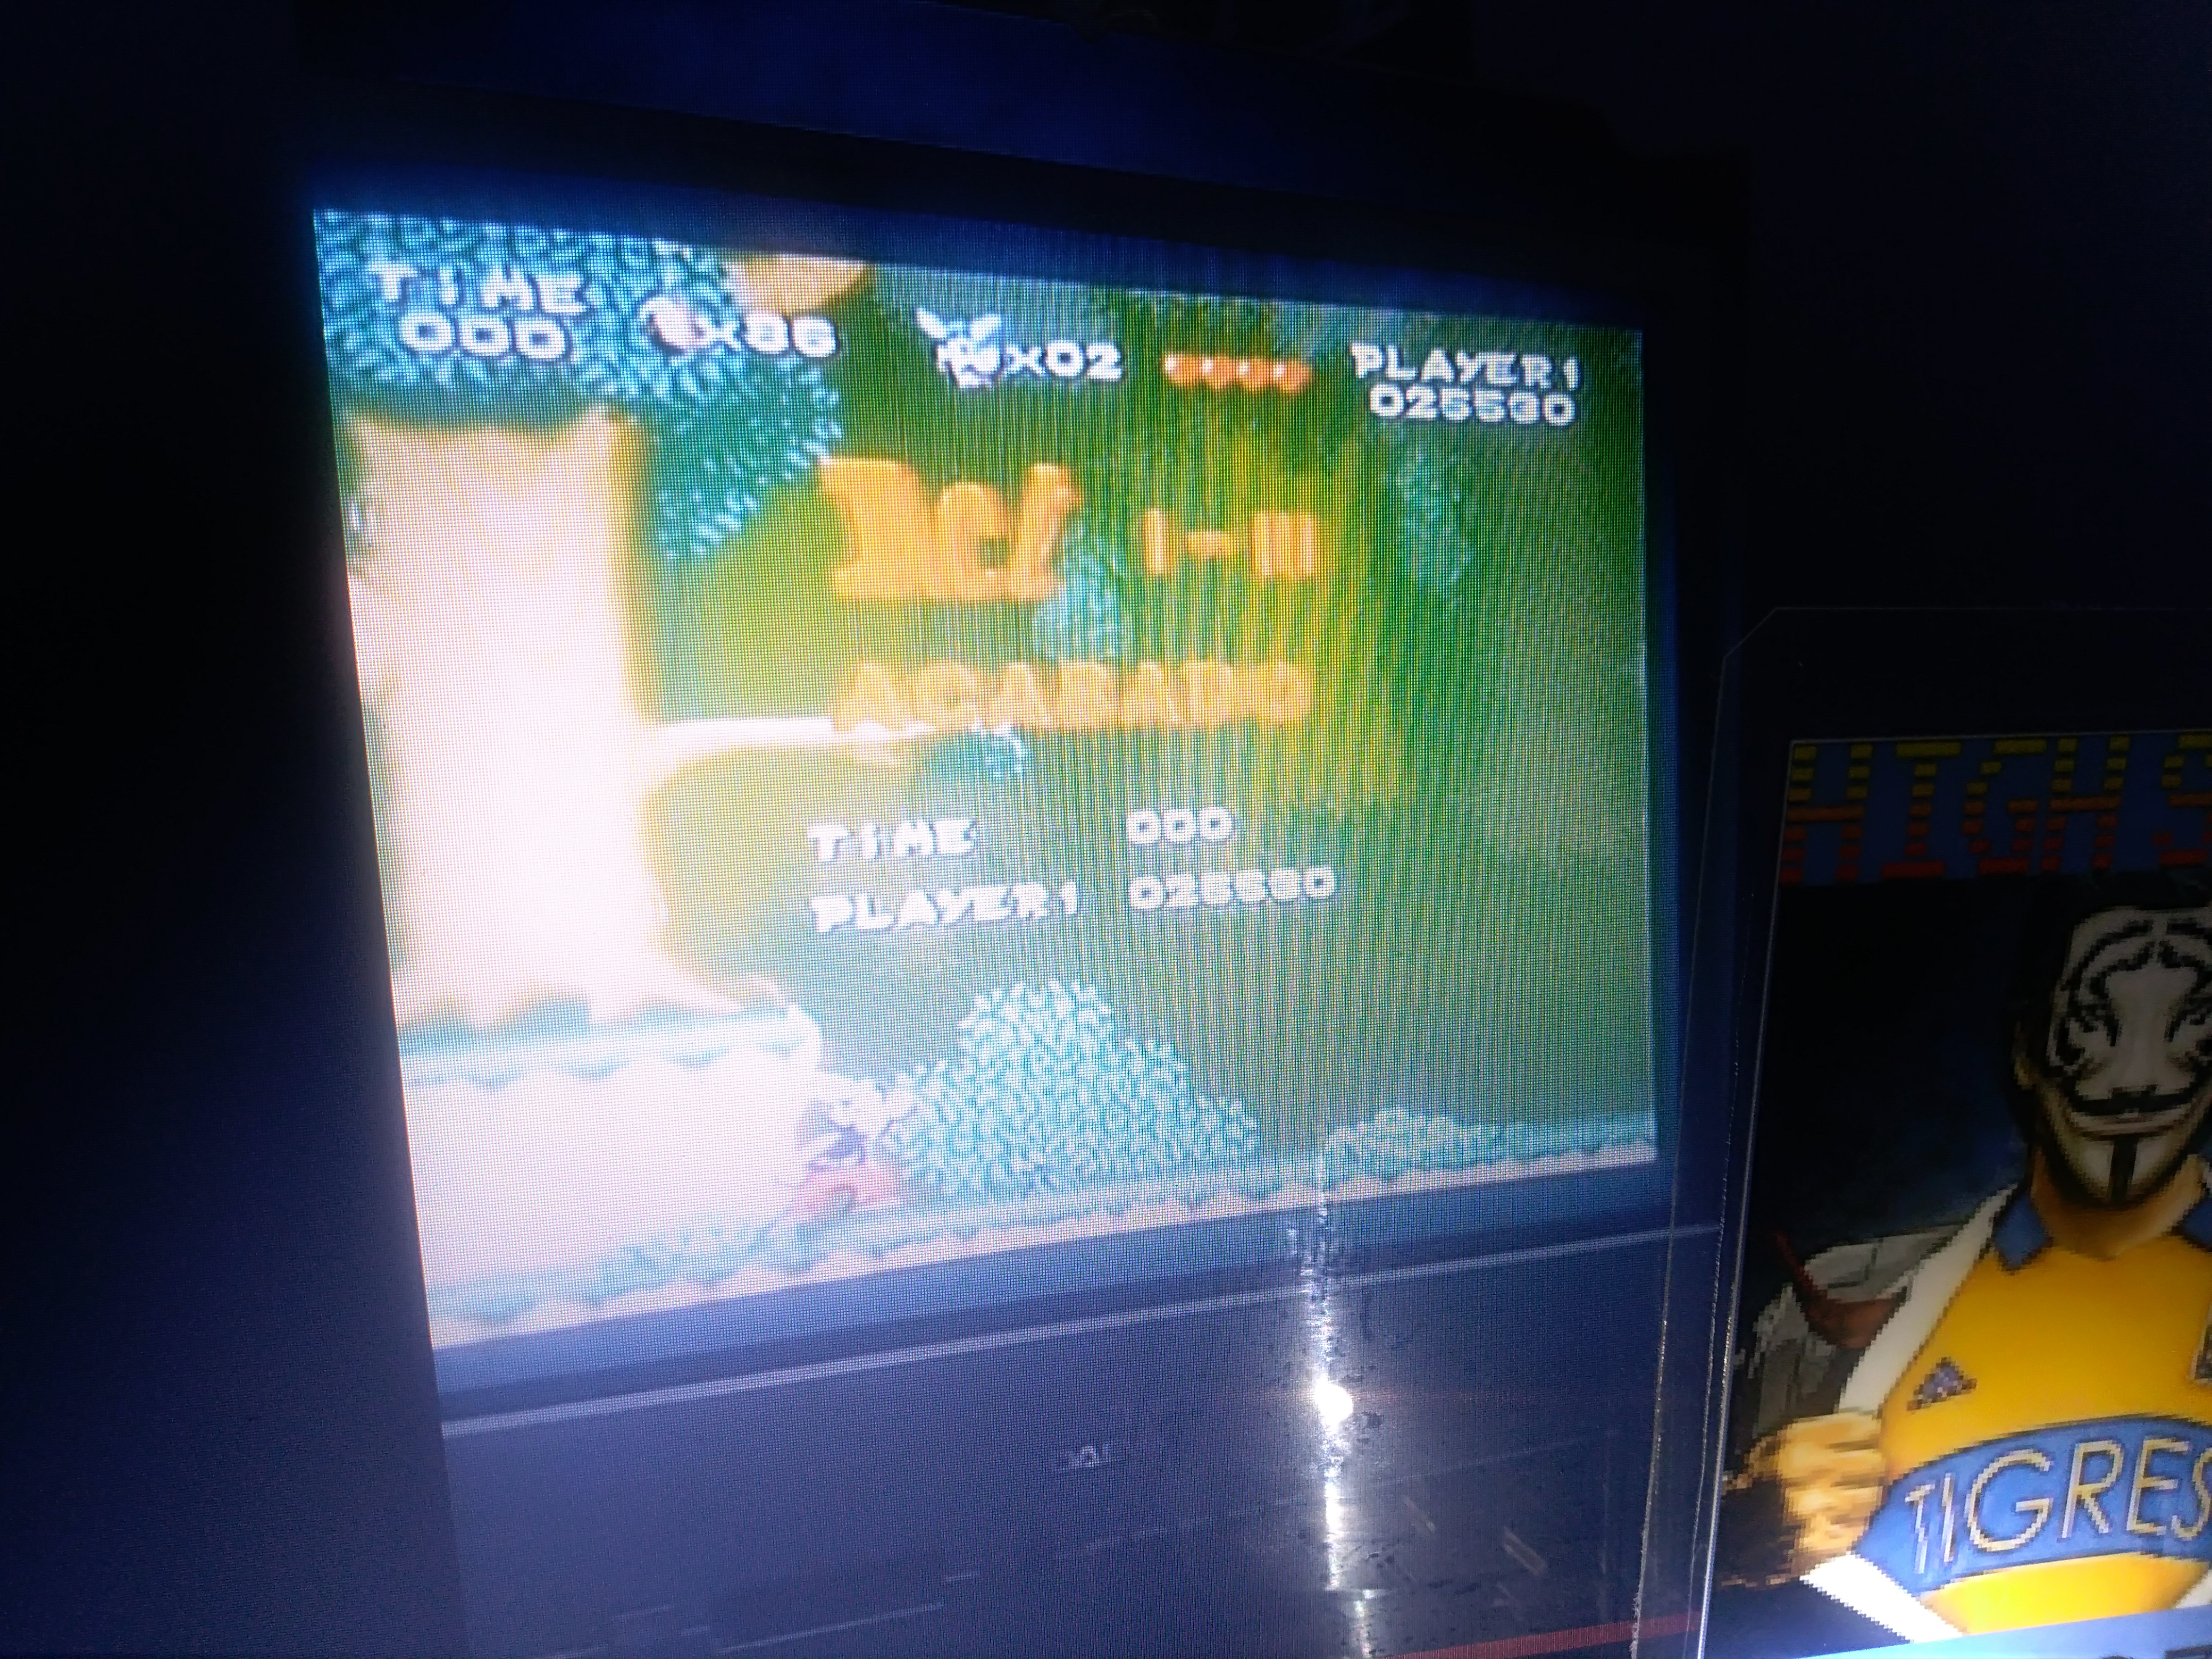 Sdrgio797: Asterix [Easy] (SNES/Super Famicom Emulated) 25,530 points on 2020-07-29 02:20:51